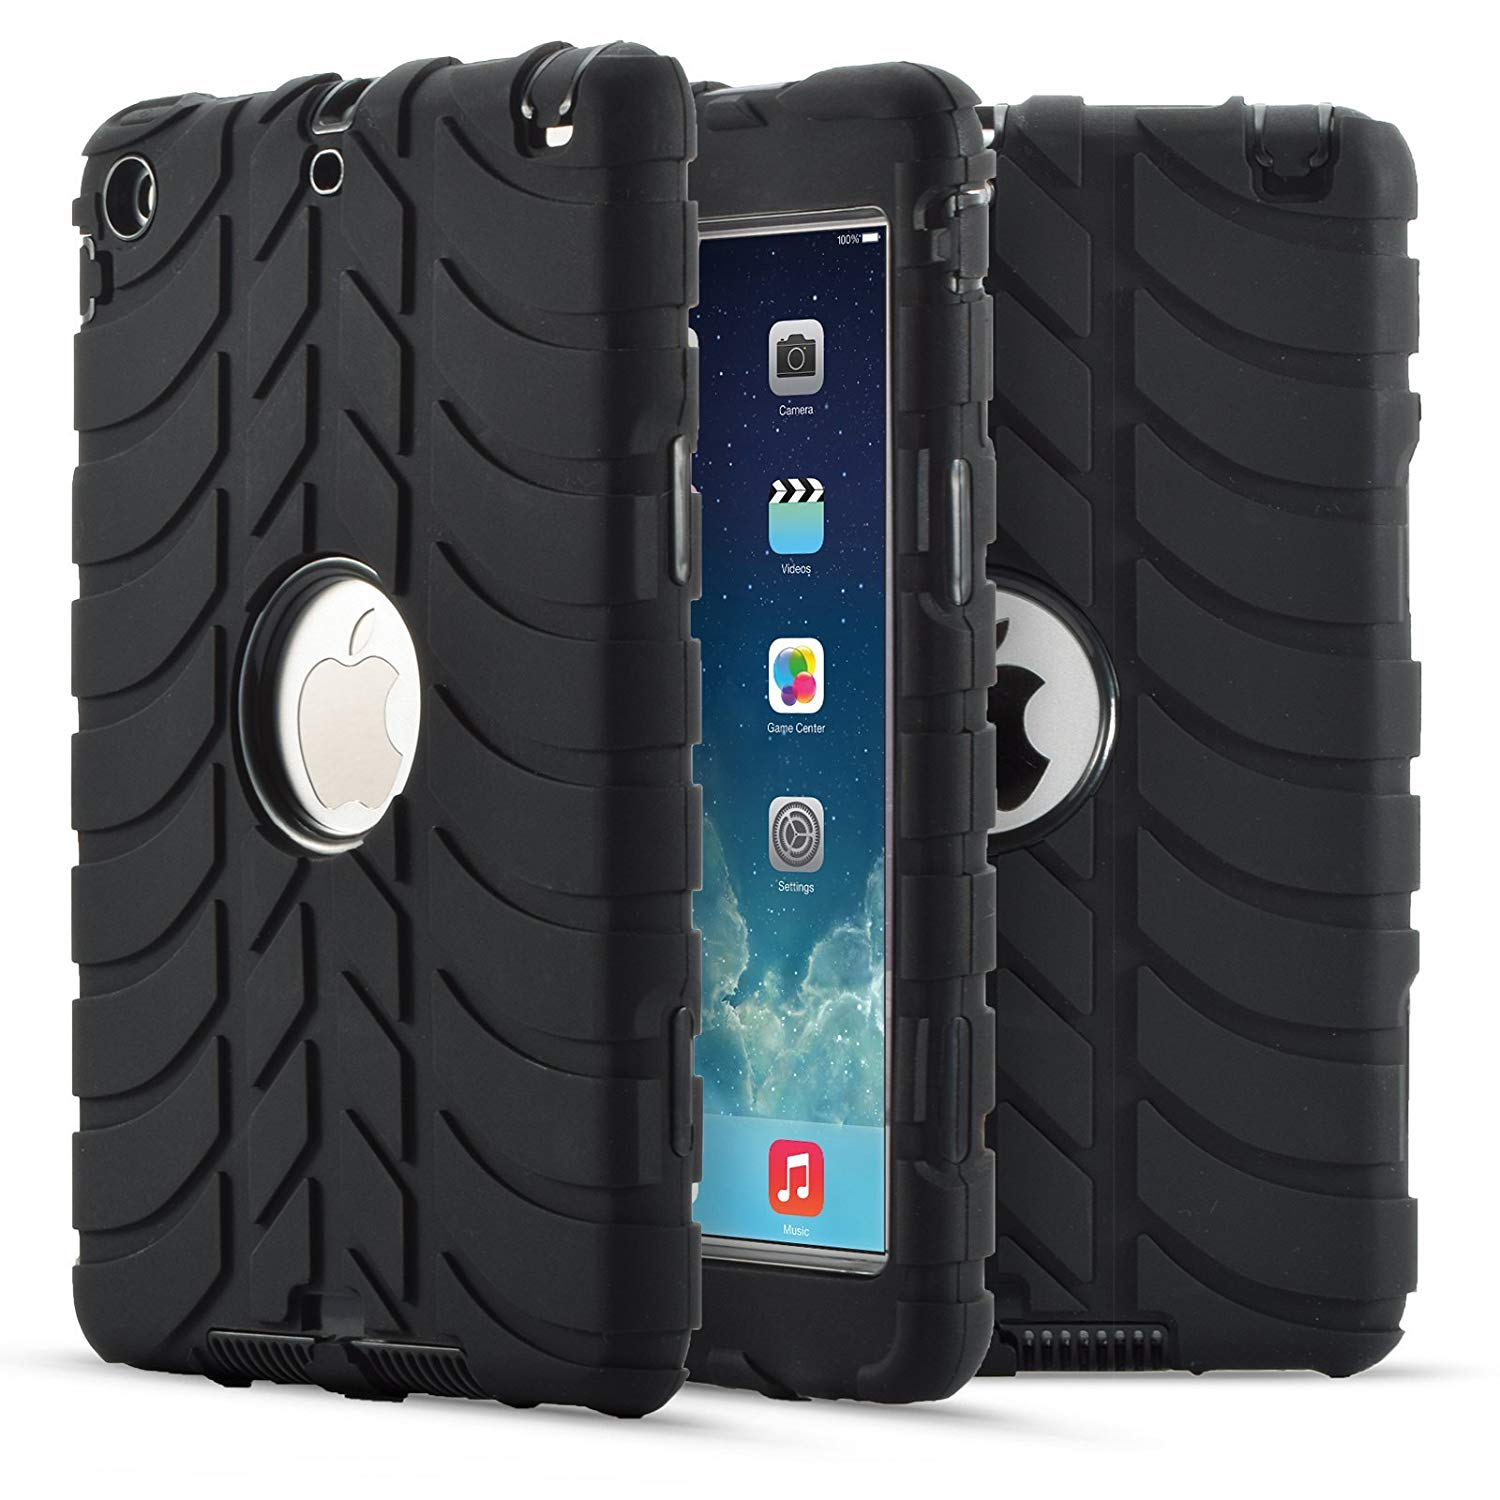 """iPad Air/ iPad 9.7 2017 2018 Case, Goodest Full-body 3 IN 1 Protective Heavy Duty Rugged Shockproof Drop Resistance Anti-slip Cover For Apple iPad Air 9.7"""" Tablet iPad 5th/6th Generation, Black"""